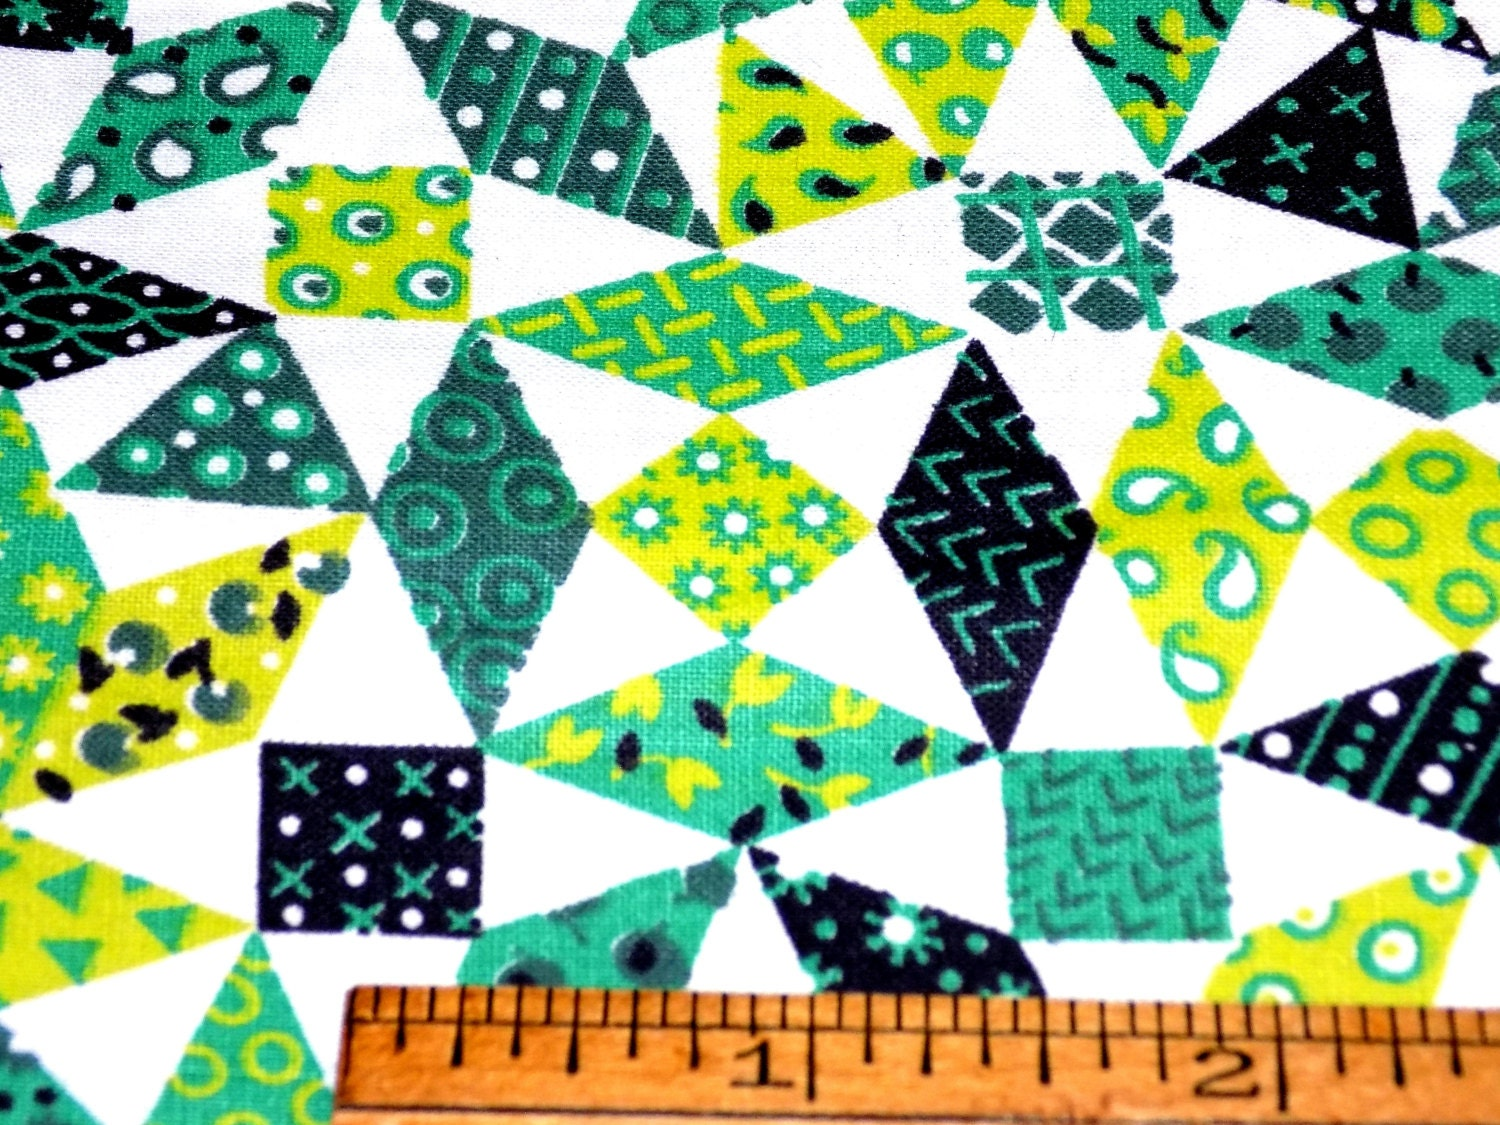 Vintage 1930s cotton fabric tiny cheater patchwork greens black white 35 wide by 36 long